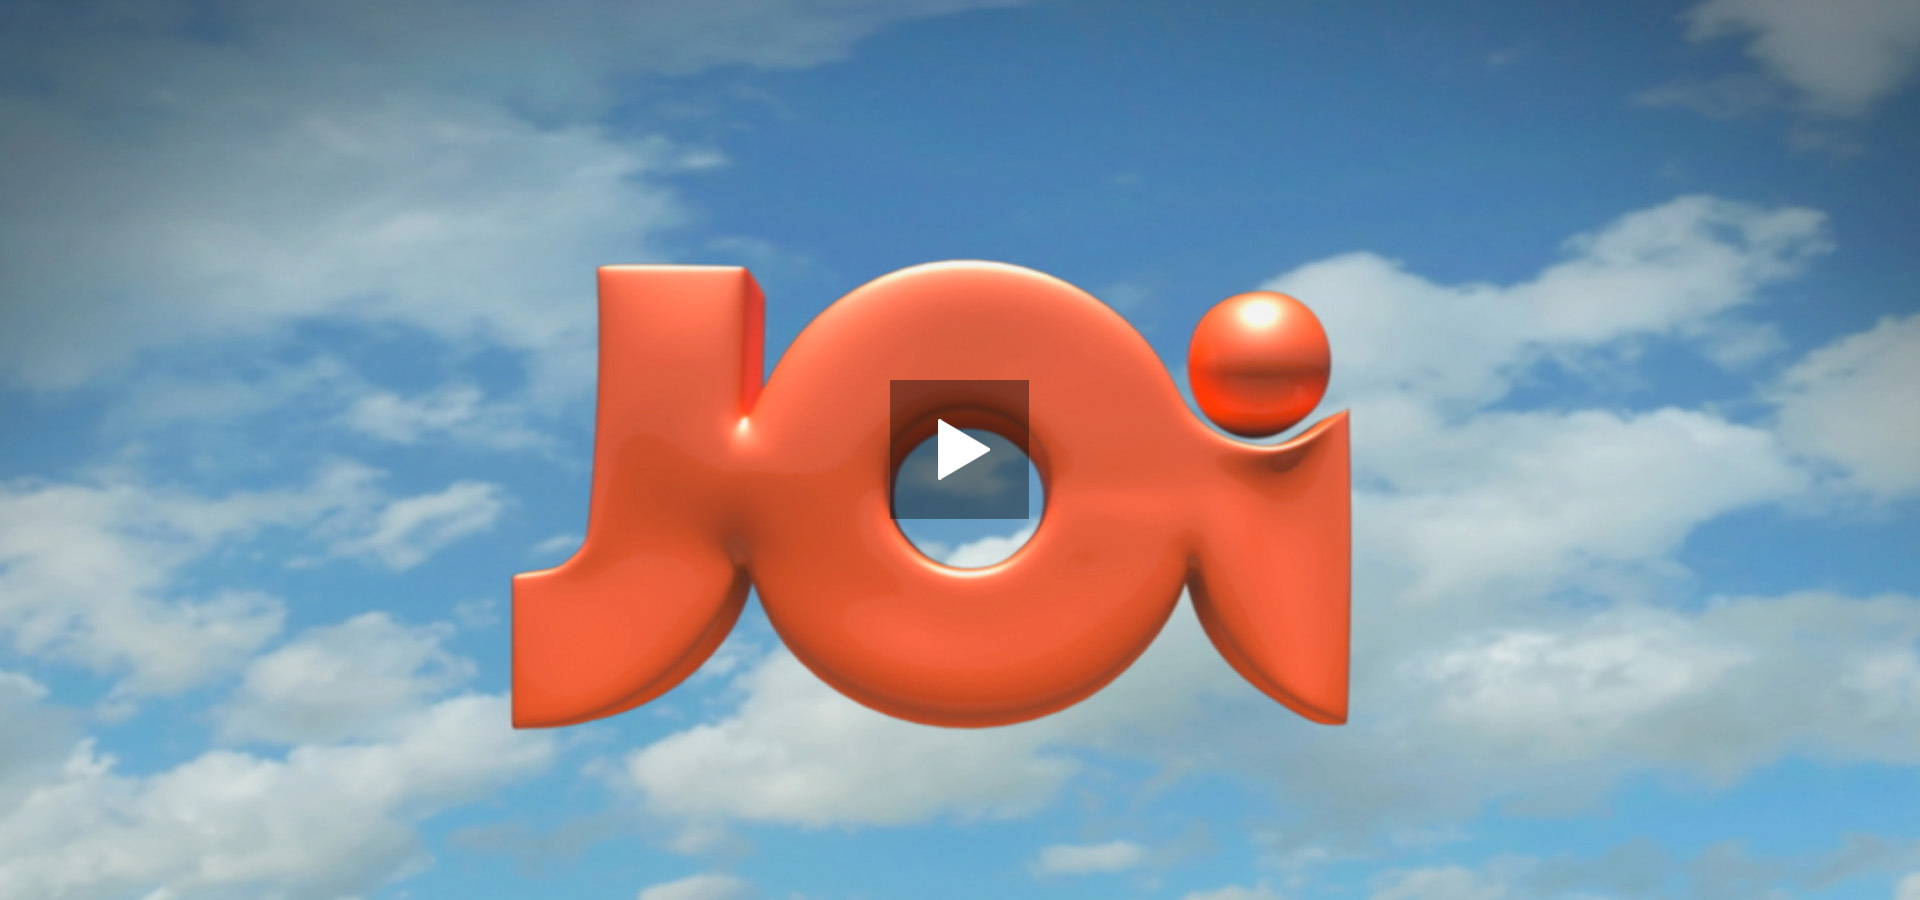 Monkey Talkie per Joi Comedy - Broadcast design - TV Branding - Promo - Idents